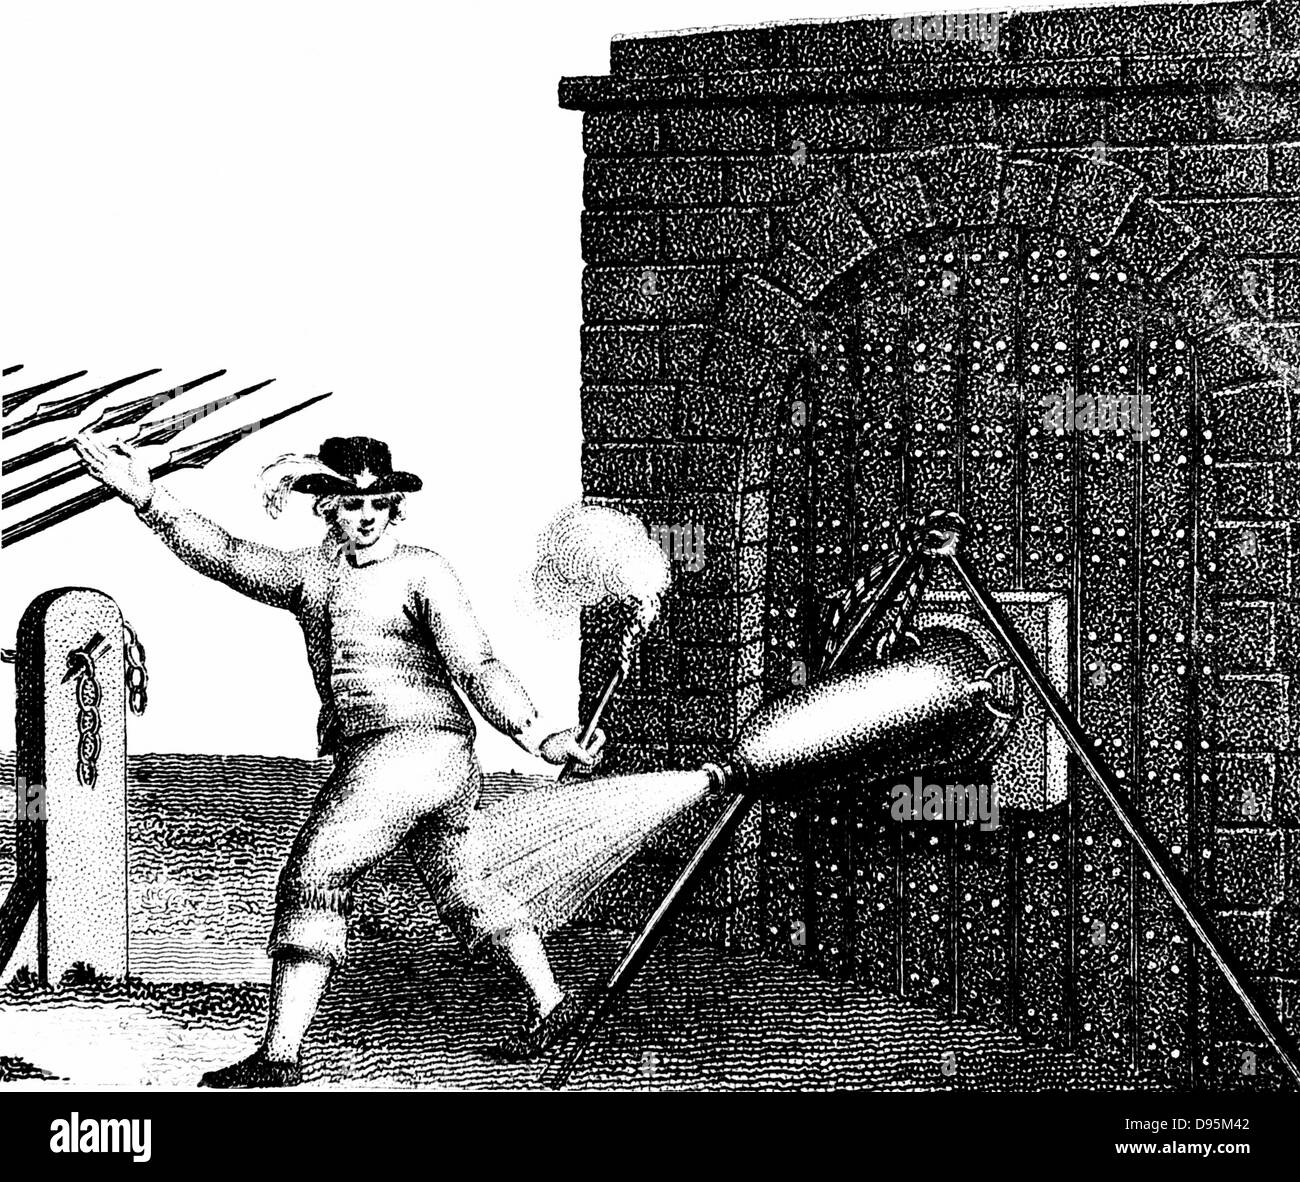 Normal method of applying a petard (explosive device) to the gate of a fortress. The fuse has just been lit and - Stock Image